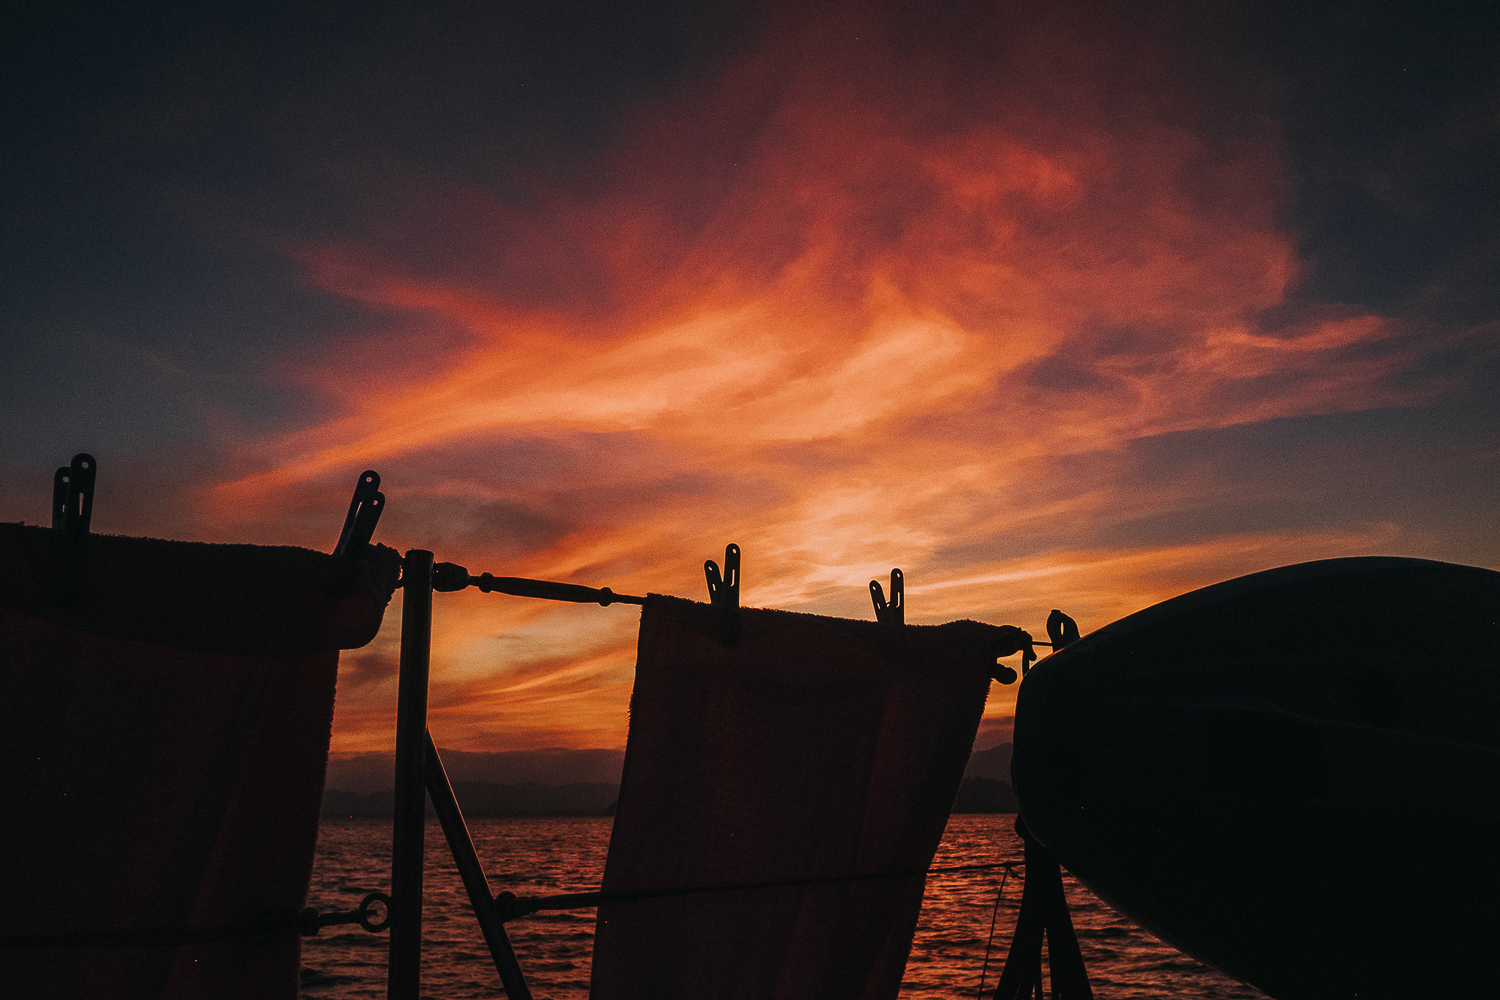 Thailand sunset shilhouette of towels on boat in front of orange sky